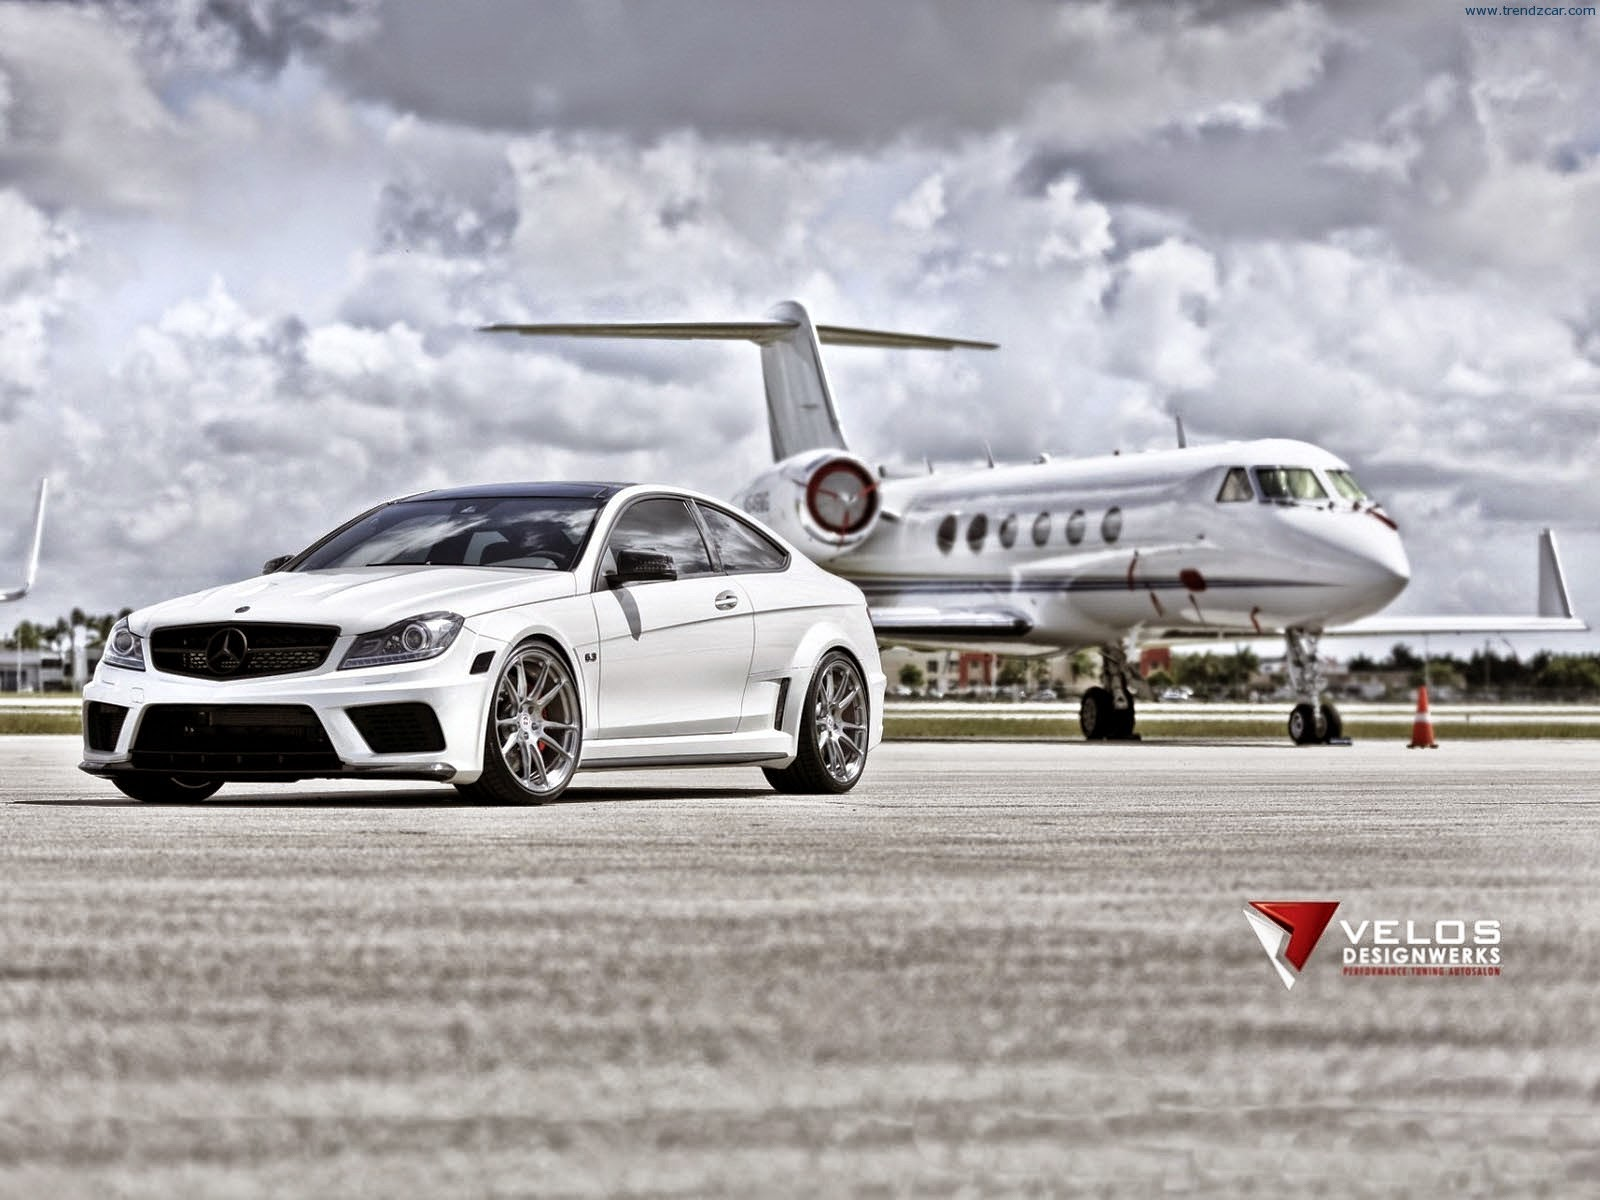 c63 amg - Mercedes Benz C63 Amg Black Series White